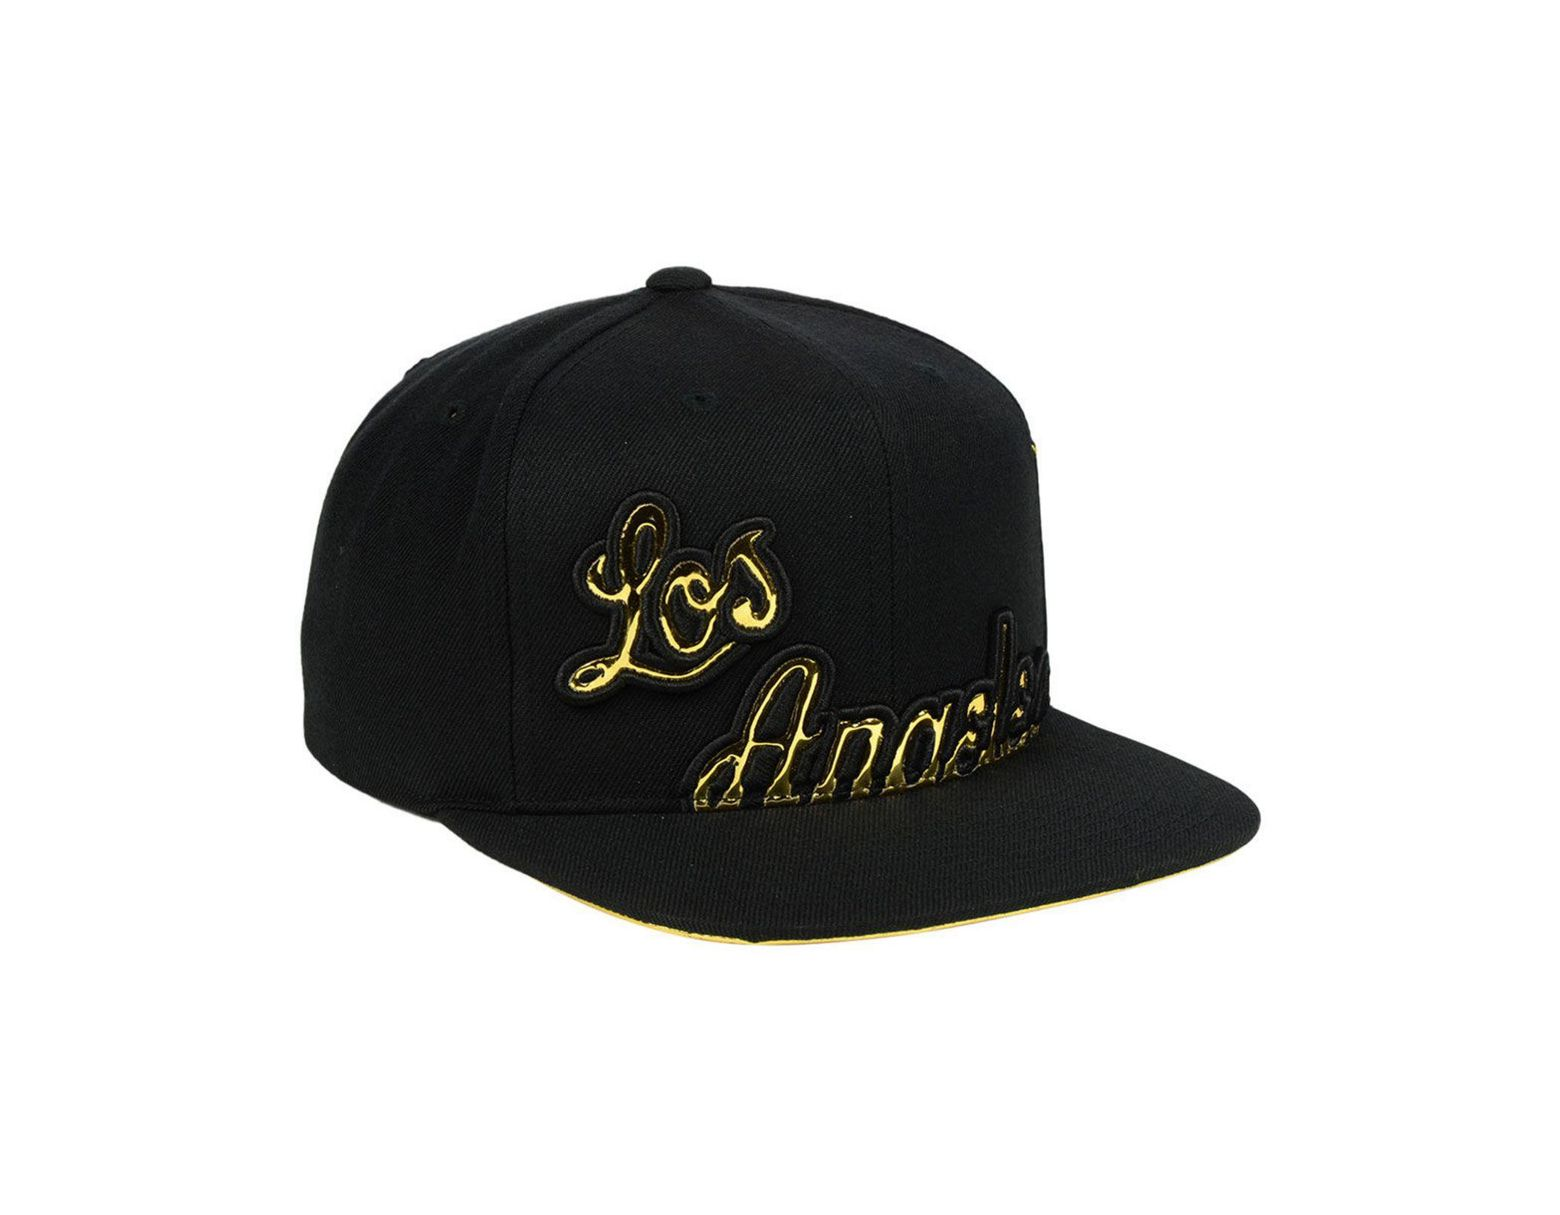 newest 4b149 edb4b Mitchell   Ness Los Angeles Lakers Patent Cropped Snapback Cap in Black for  Men - Lyst